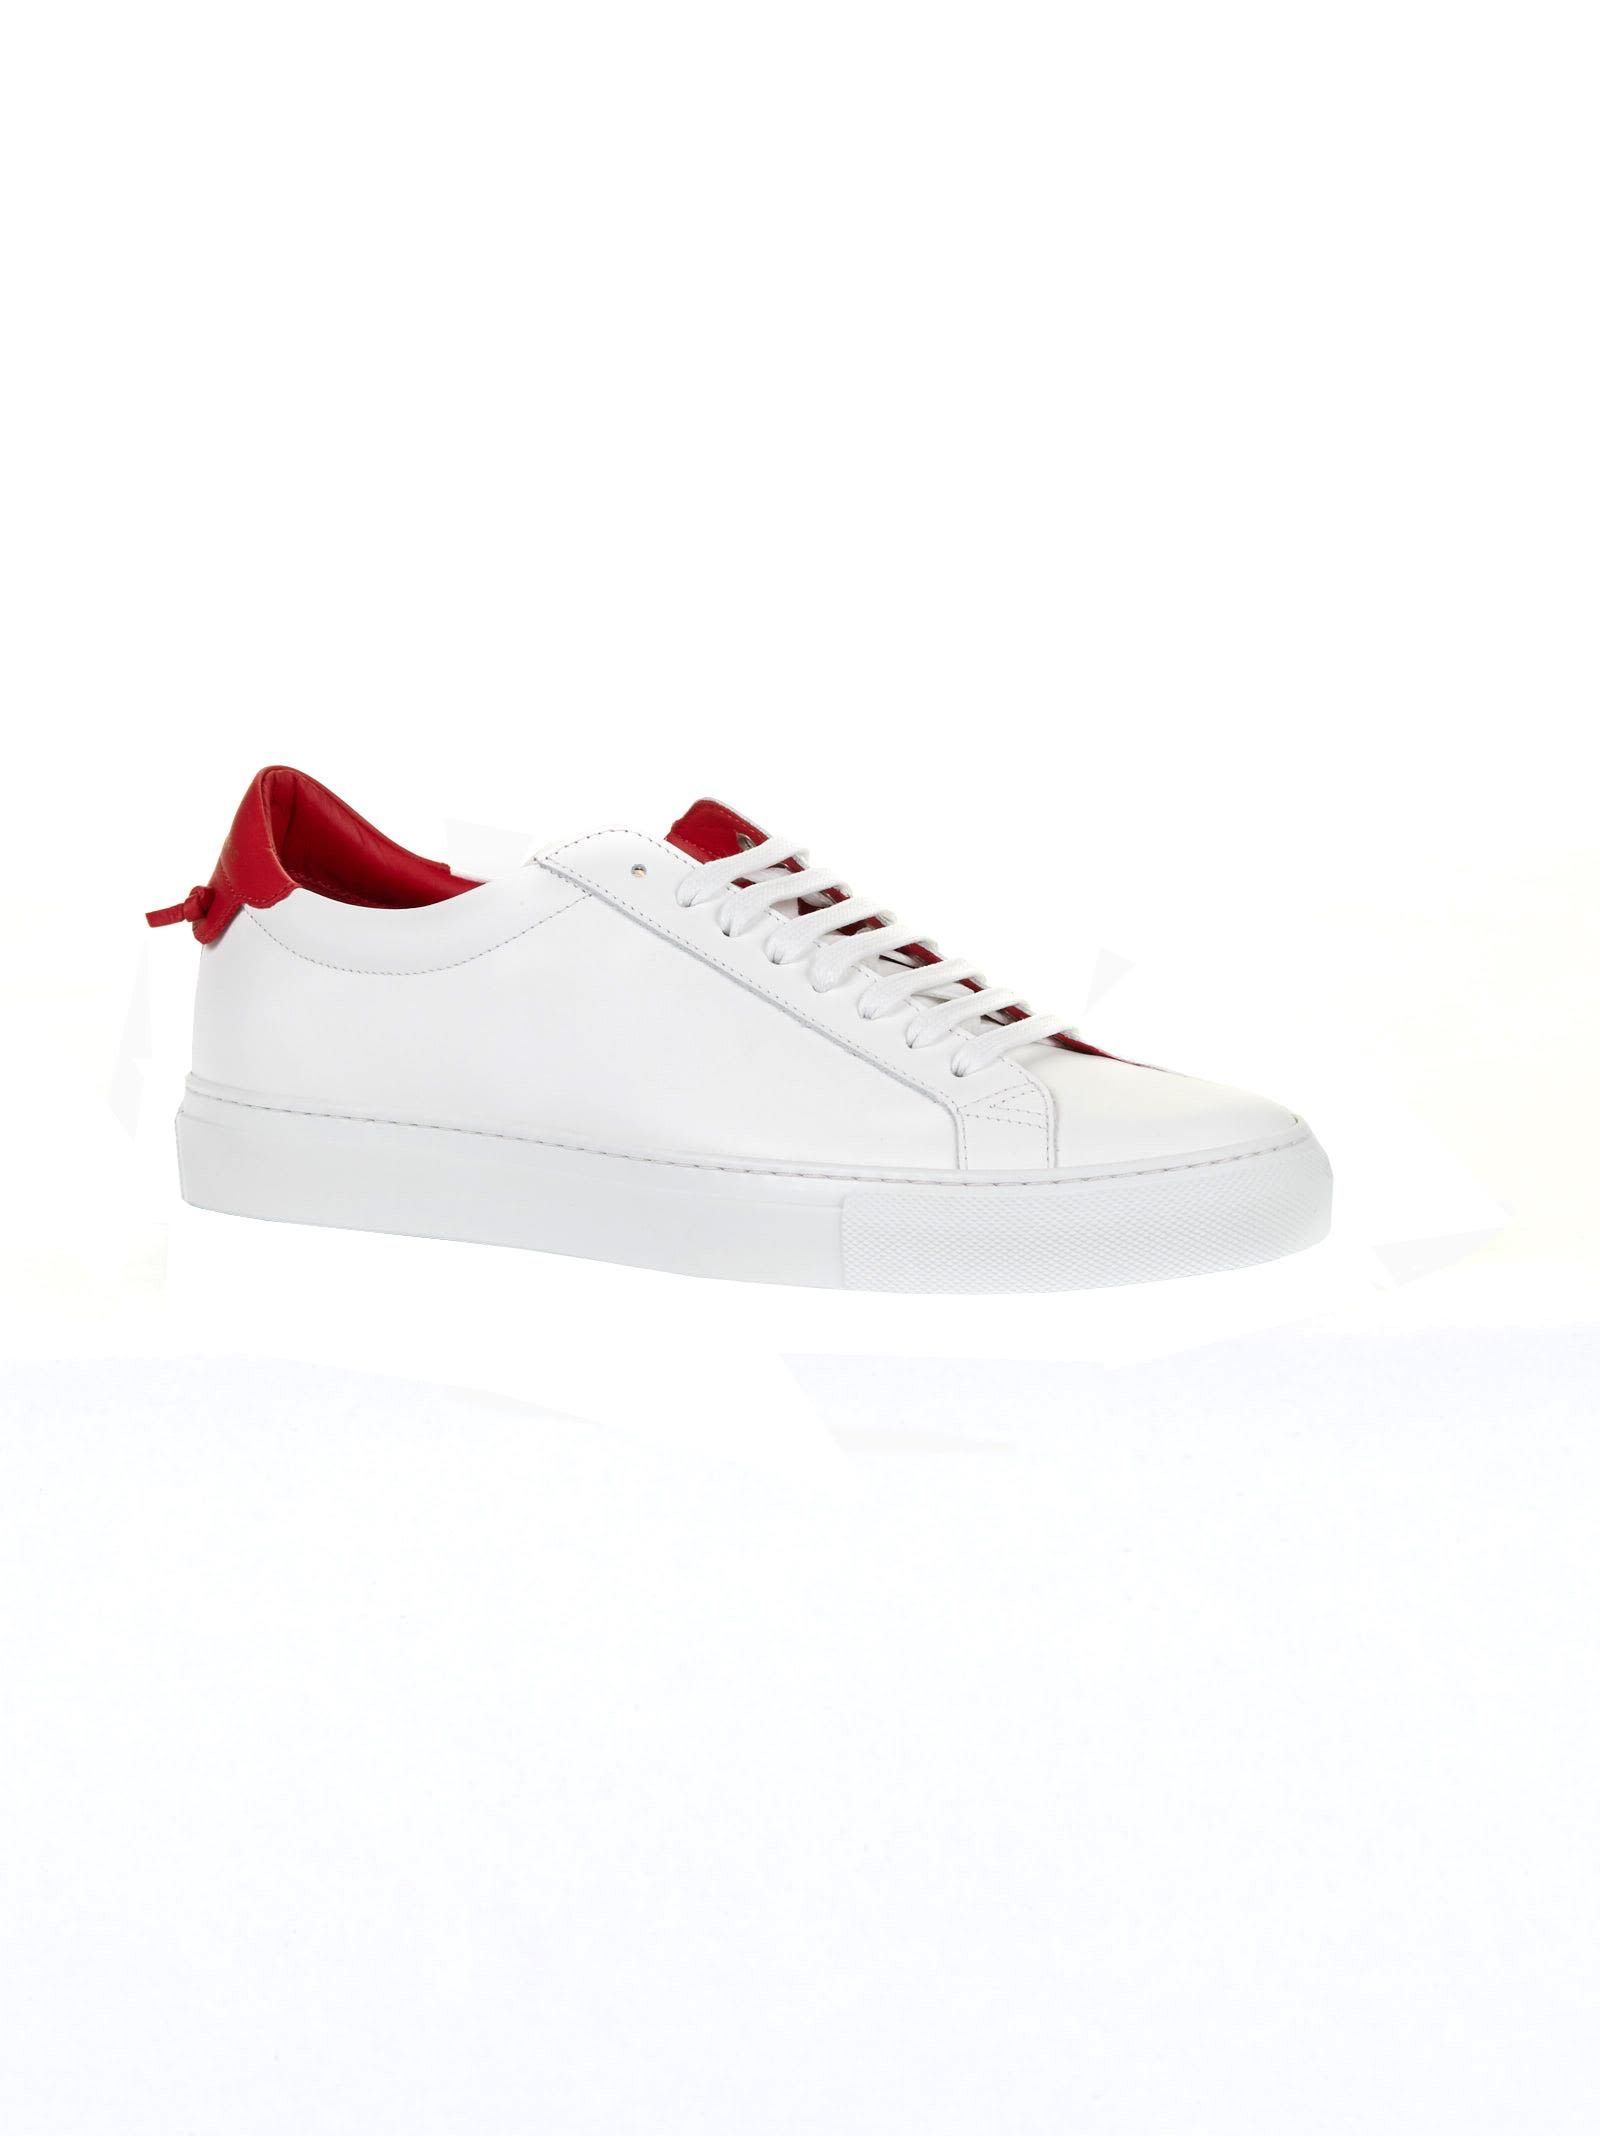 SneakersgivenchyshoesSneakers Street Givenchy Urban SneakersgivenchyshoesSneakers Givenchy Hdg Givenchy Hdg Urban Street Ljq54A3R